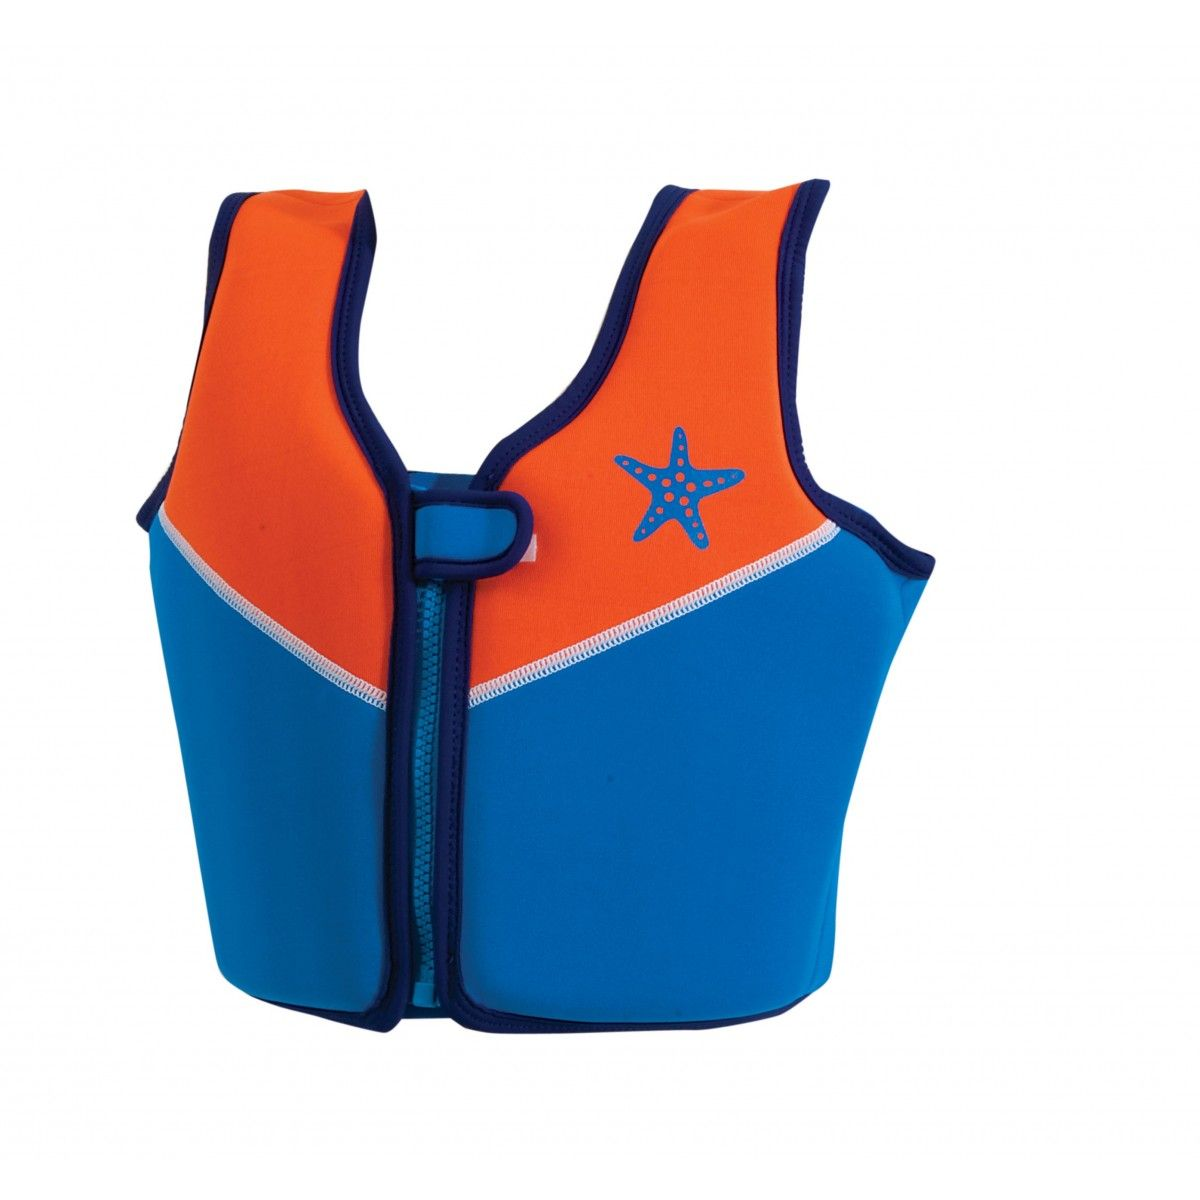 Boys Swim Jacket - 4-5yrs, aids a natural swimming position to encourage movement in the water